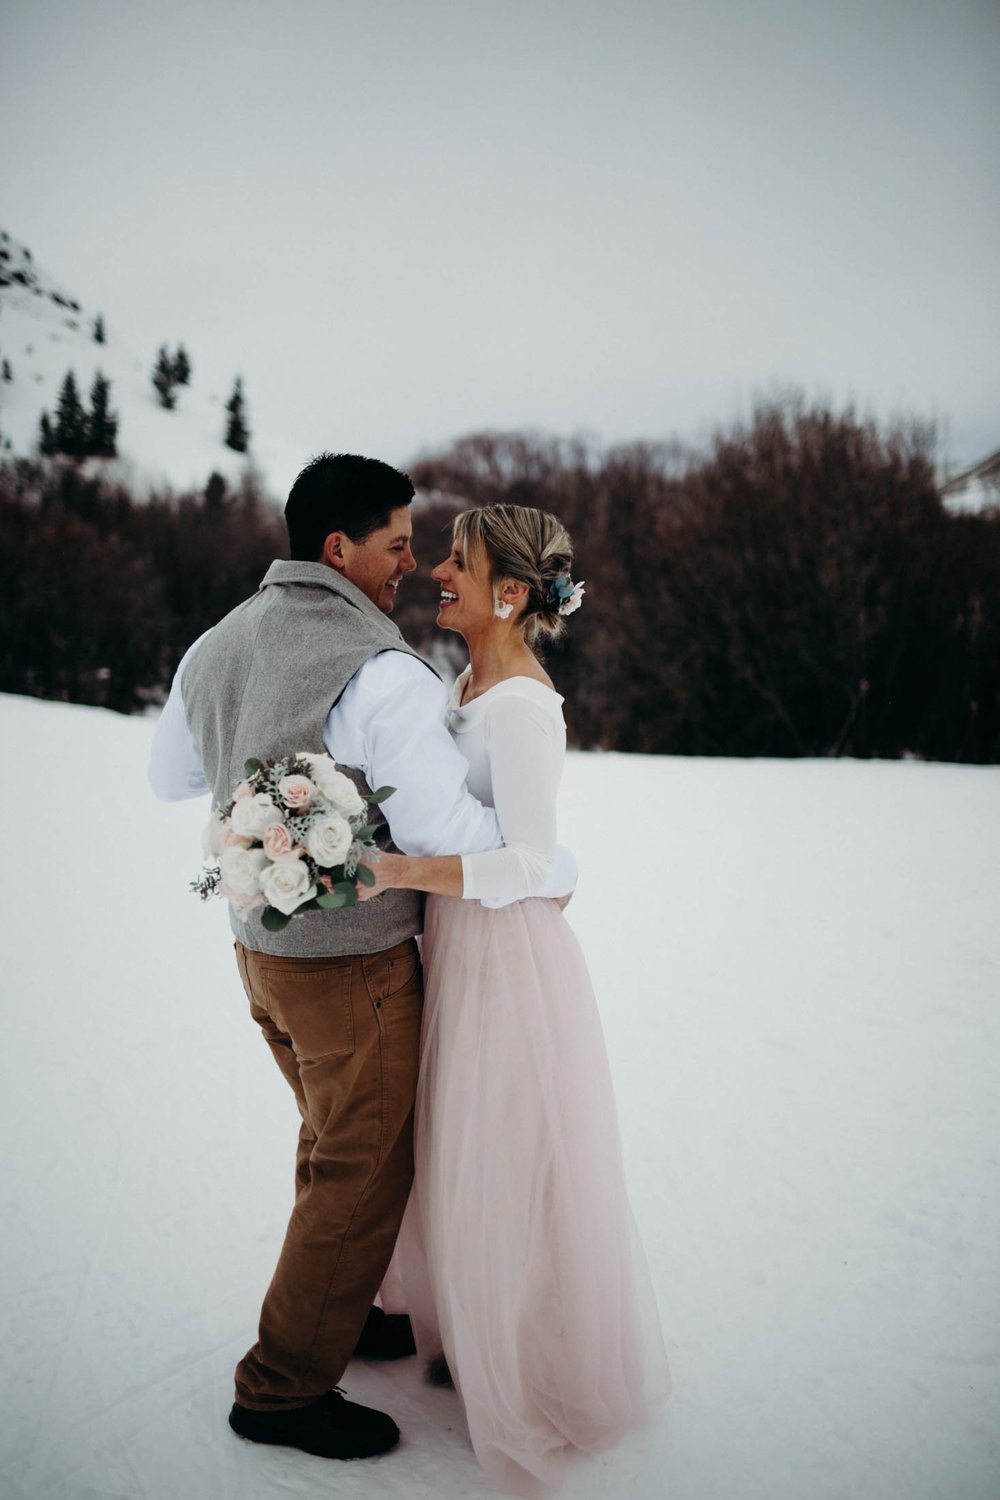 H_J_SunValley_winter_wedding-18.jpg